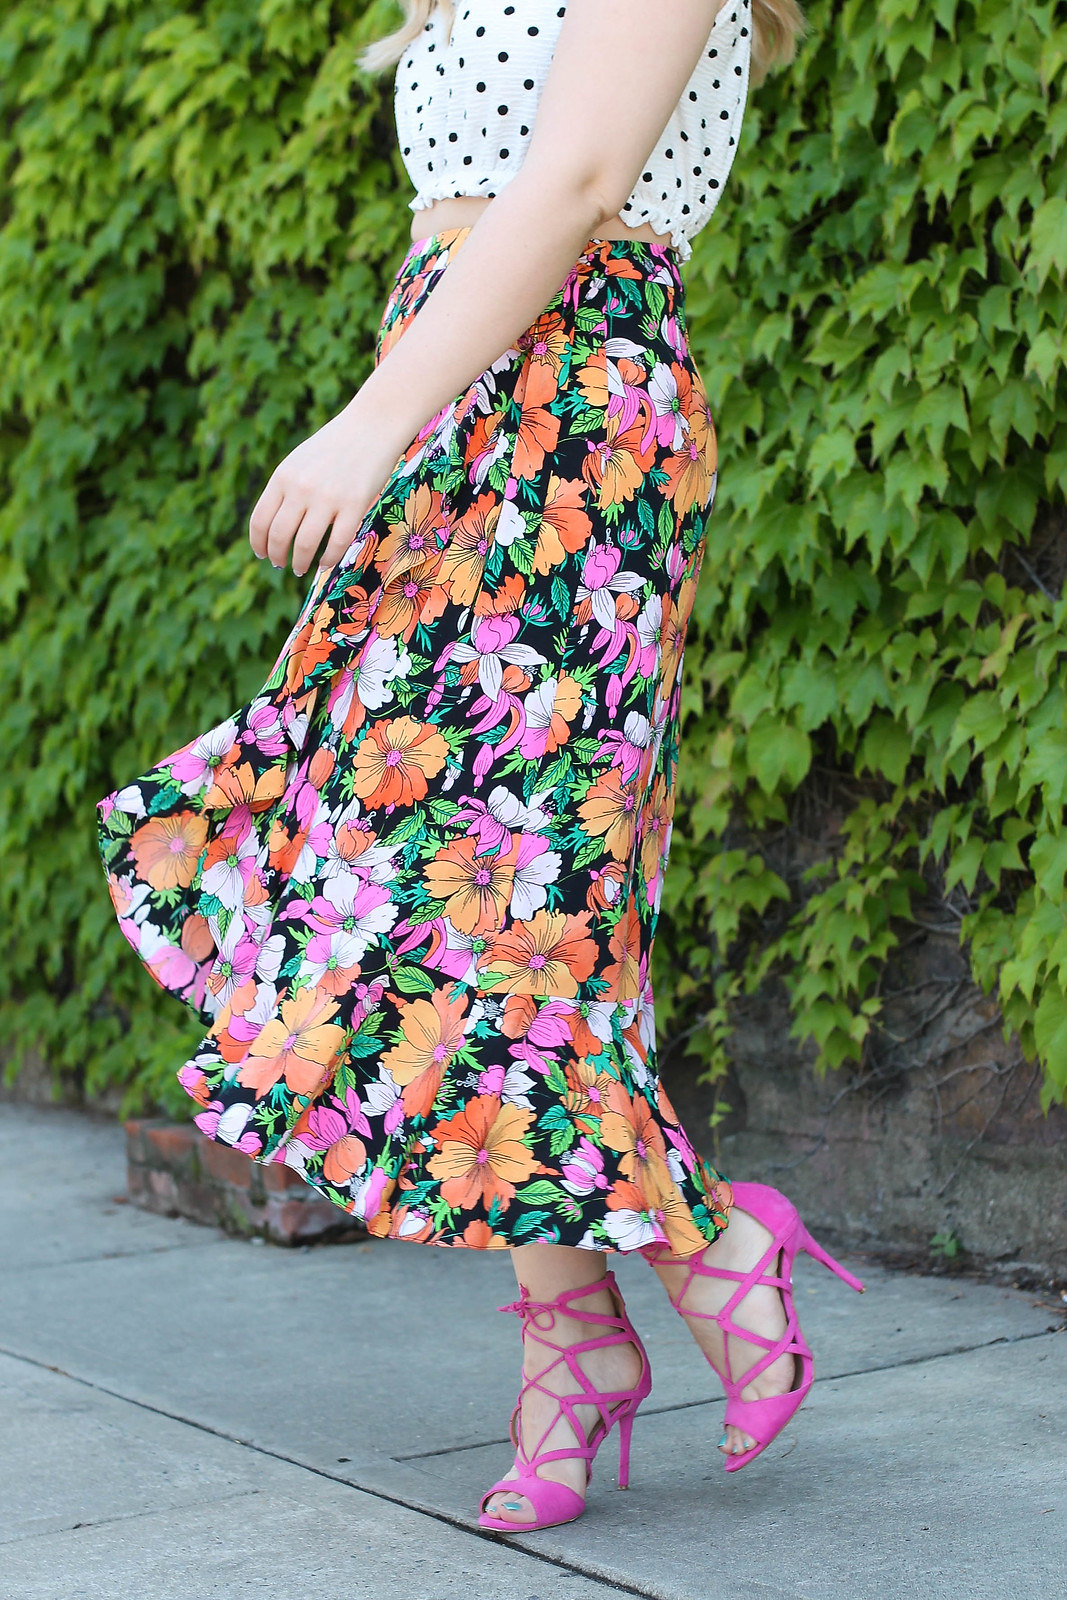 White Polka Dot Crop Top | Floral Wrap Midi Skirt | Hot Pink Lace Up Heeled Sandals